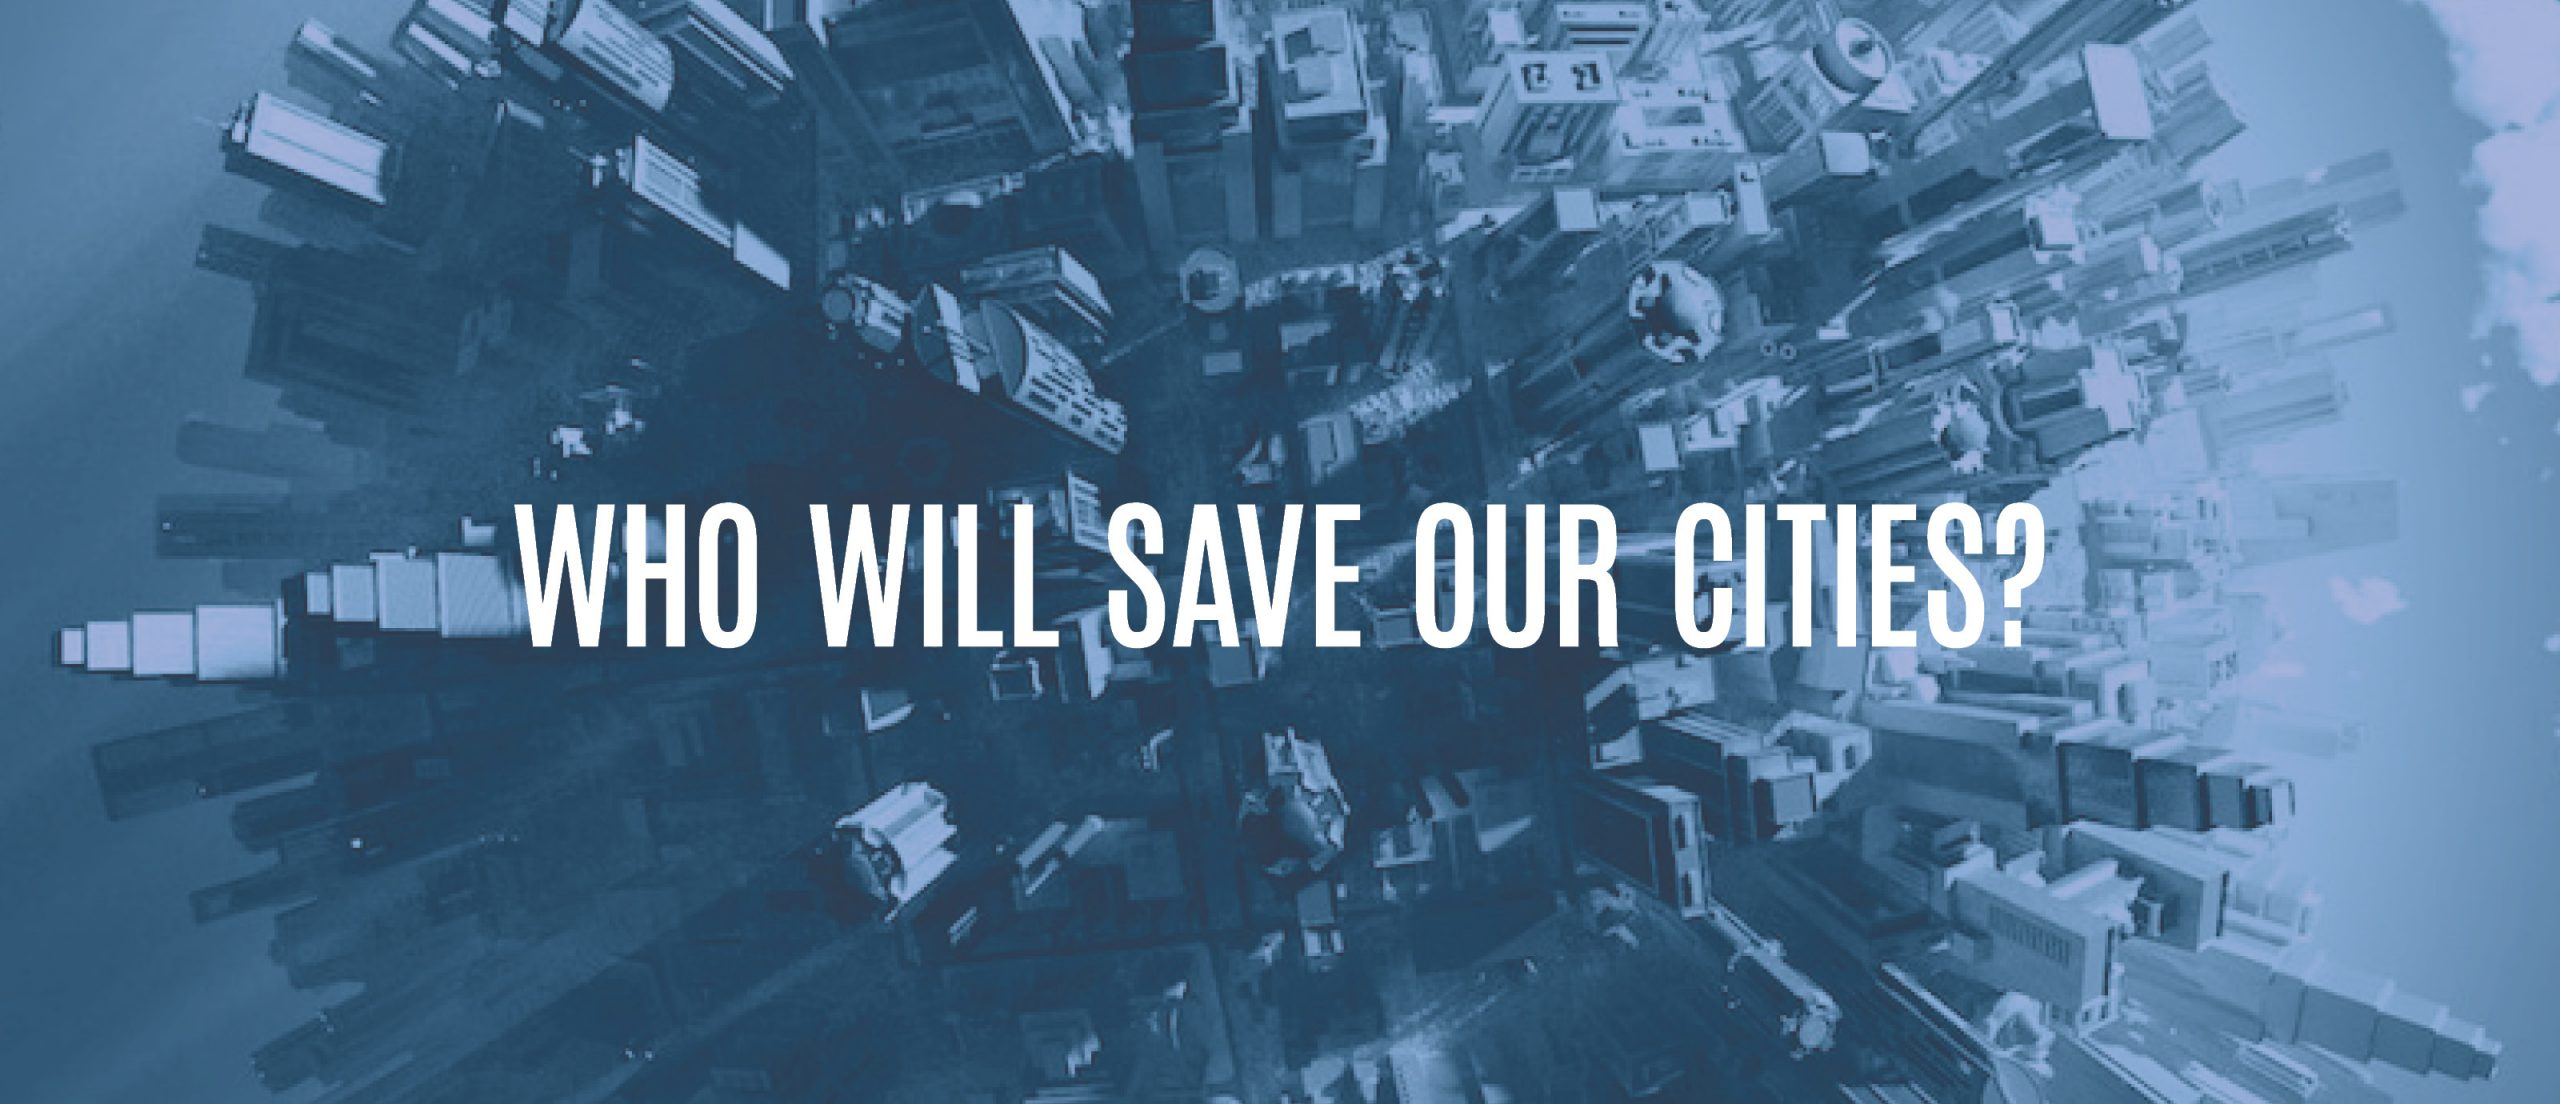 Blog Title - Who will save our cities?